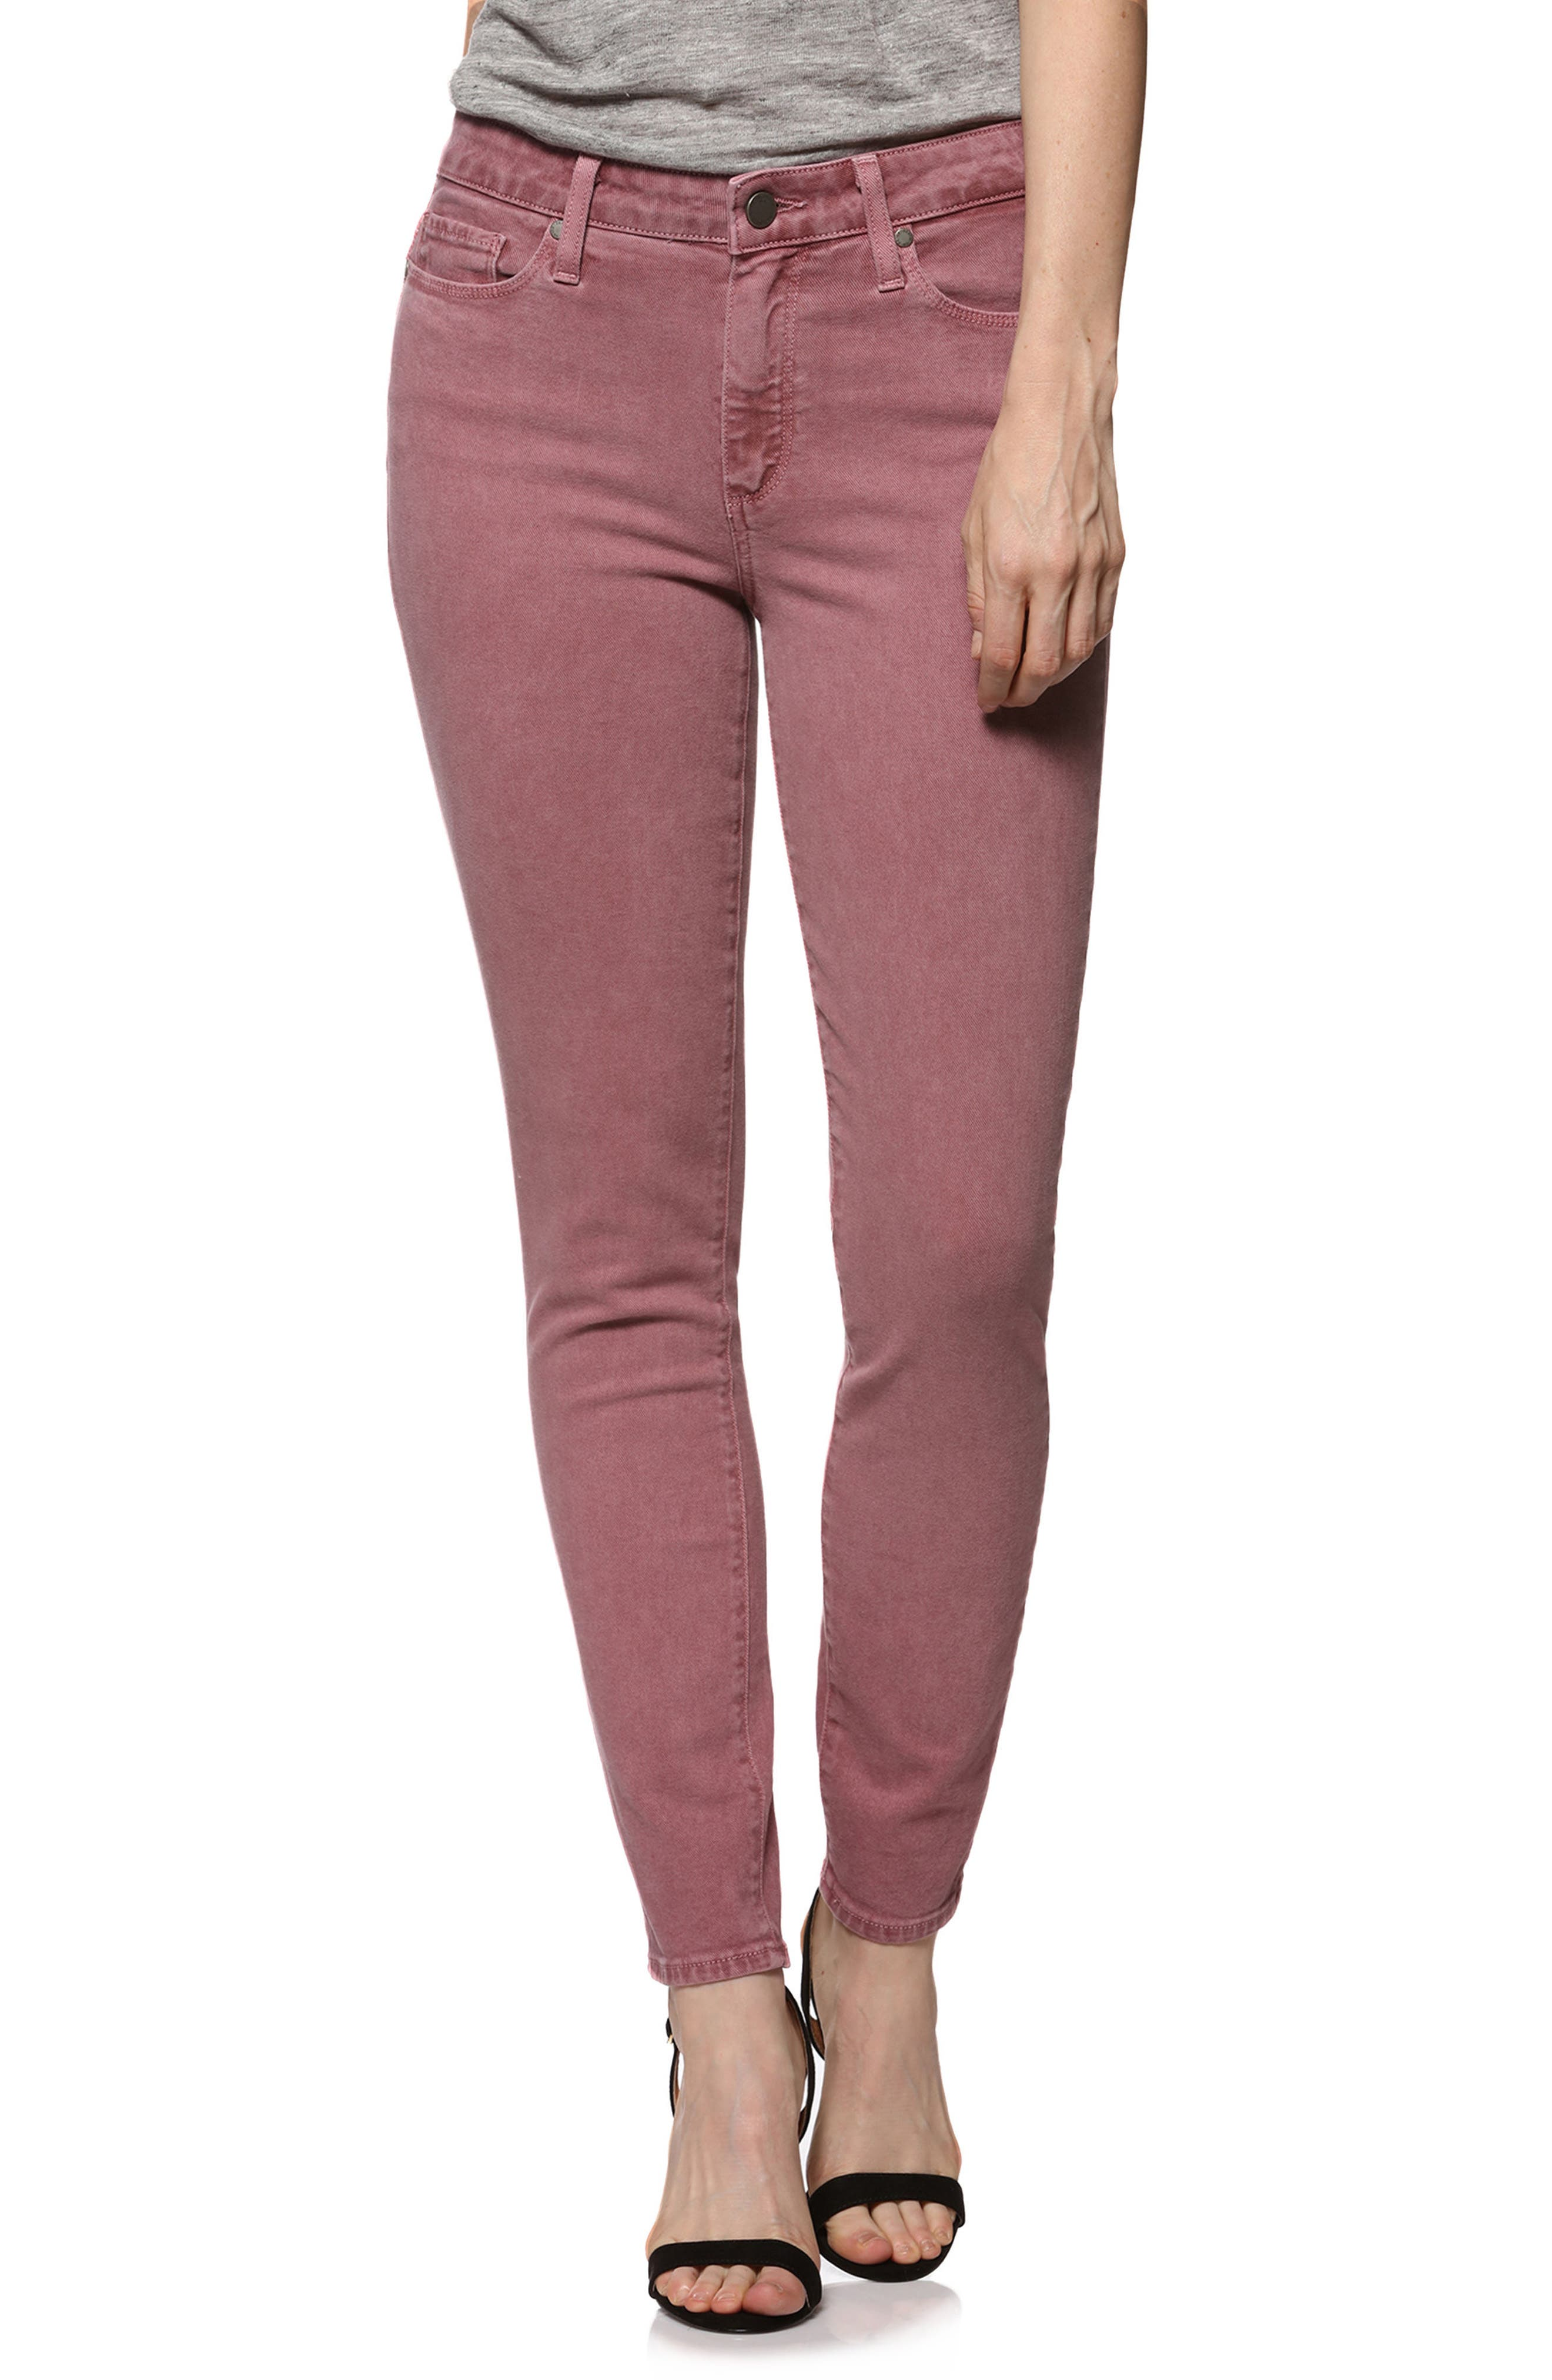 Hoxton High Waist Ankle Ultra Skinny Jeans,                         Main,                         color, 650